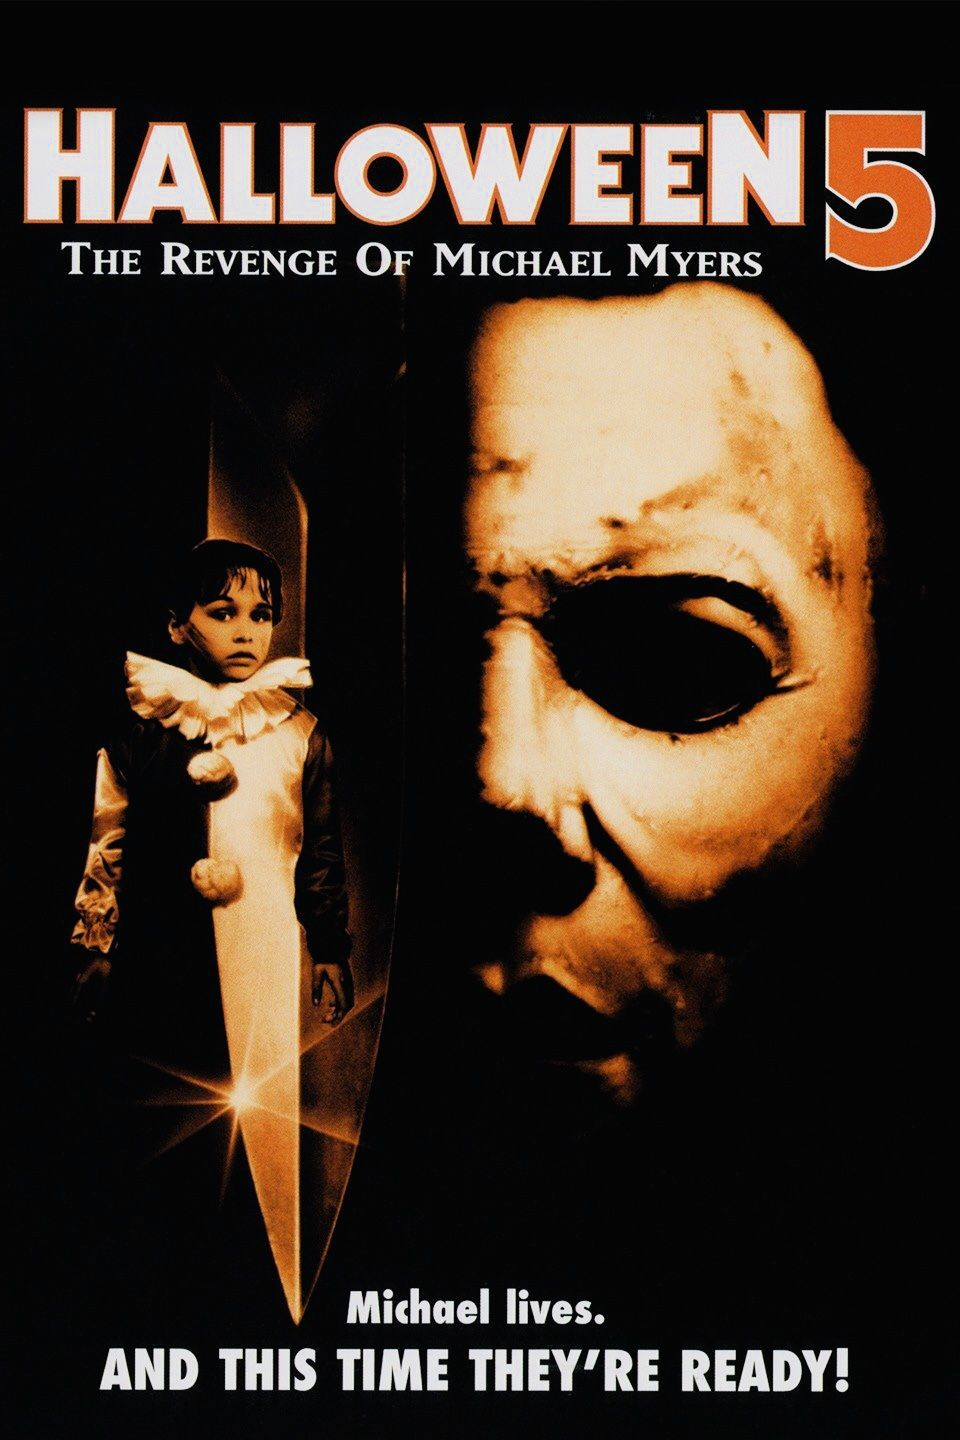 Halloween 5 The Revenge of Michael Myers (1989